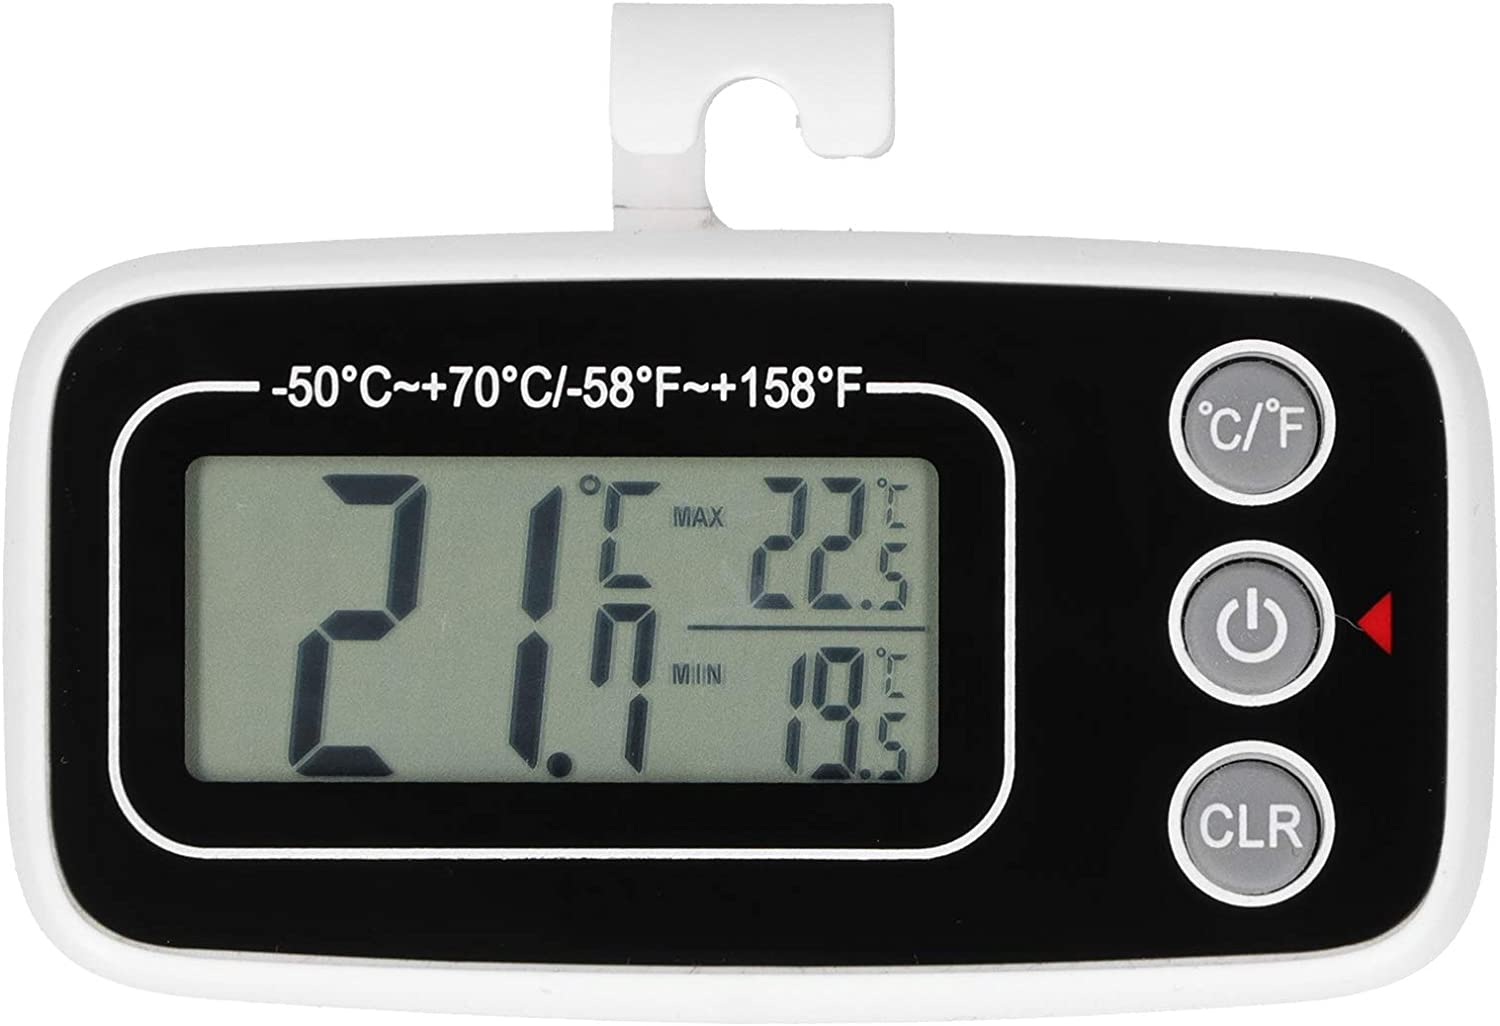 Mini High quality new Household Waterproof Daily bargain sale Refrigerator Temperat with Thermometer